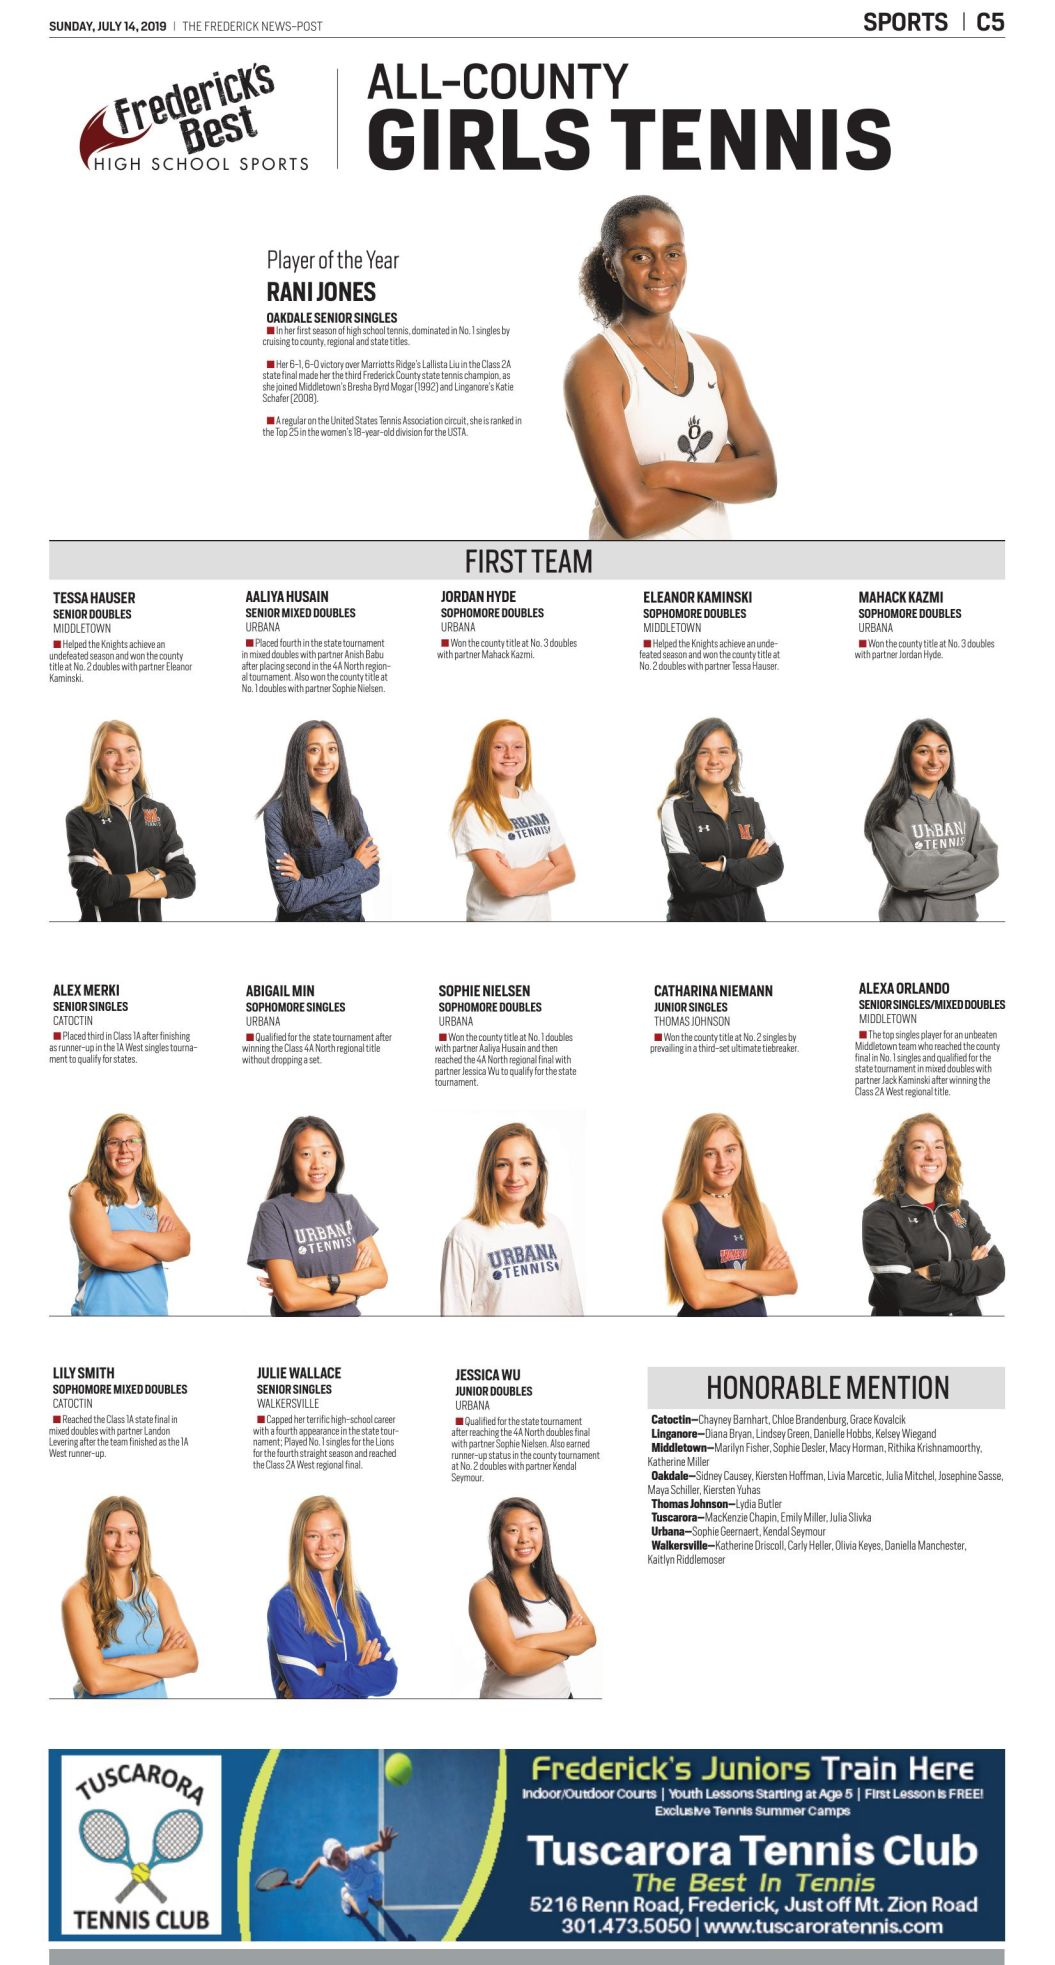 2019 All-County Girls Tennis